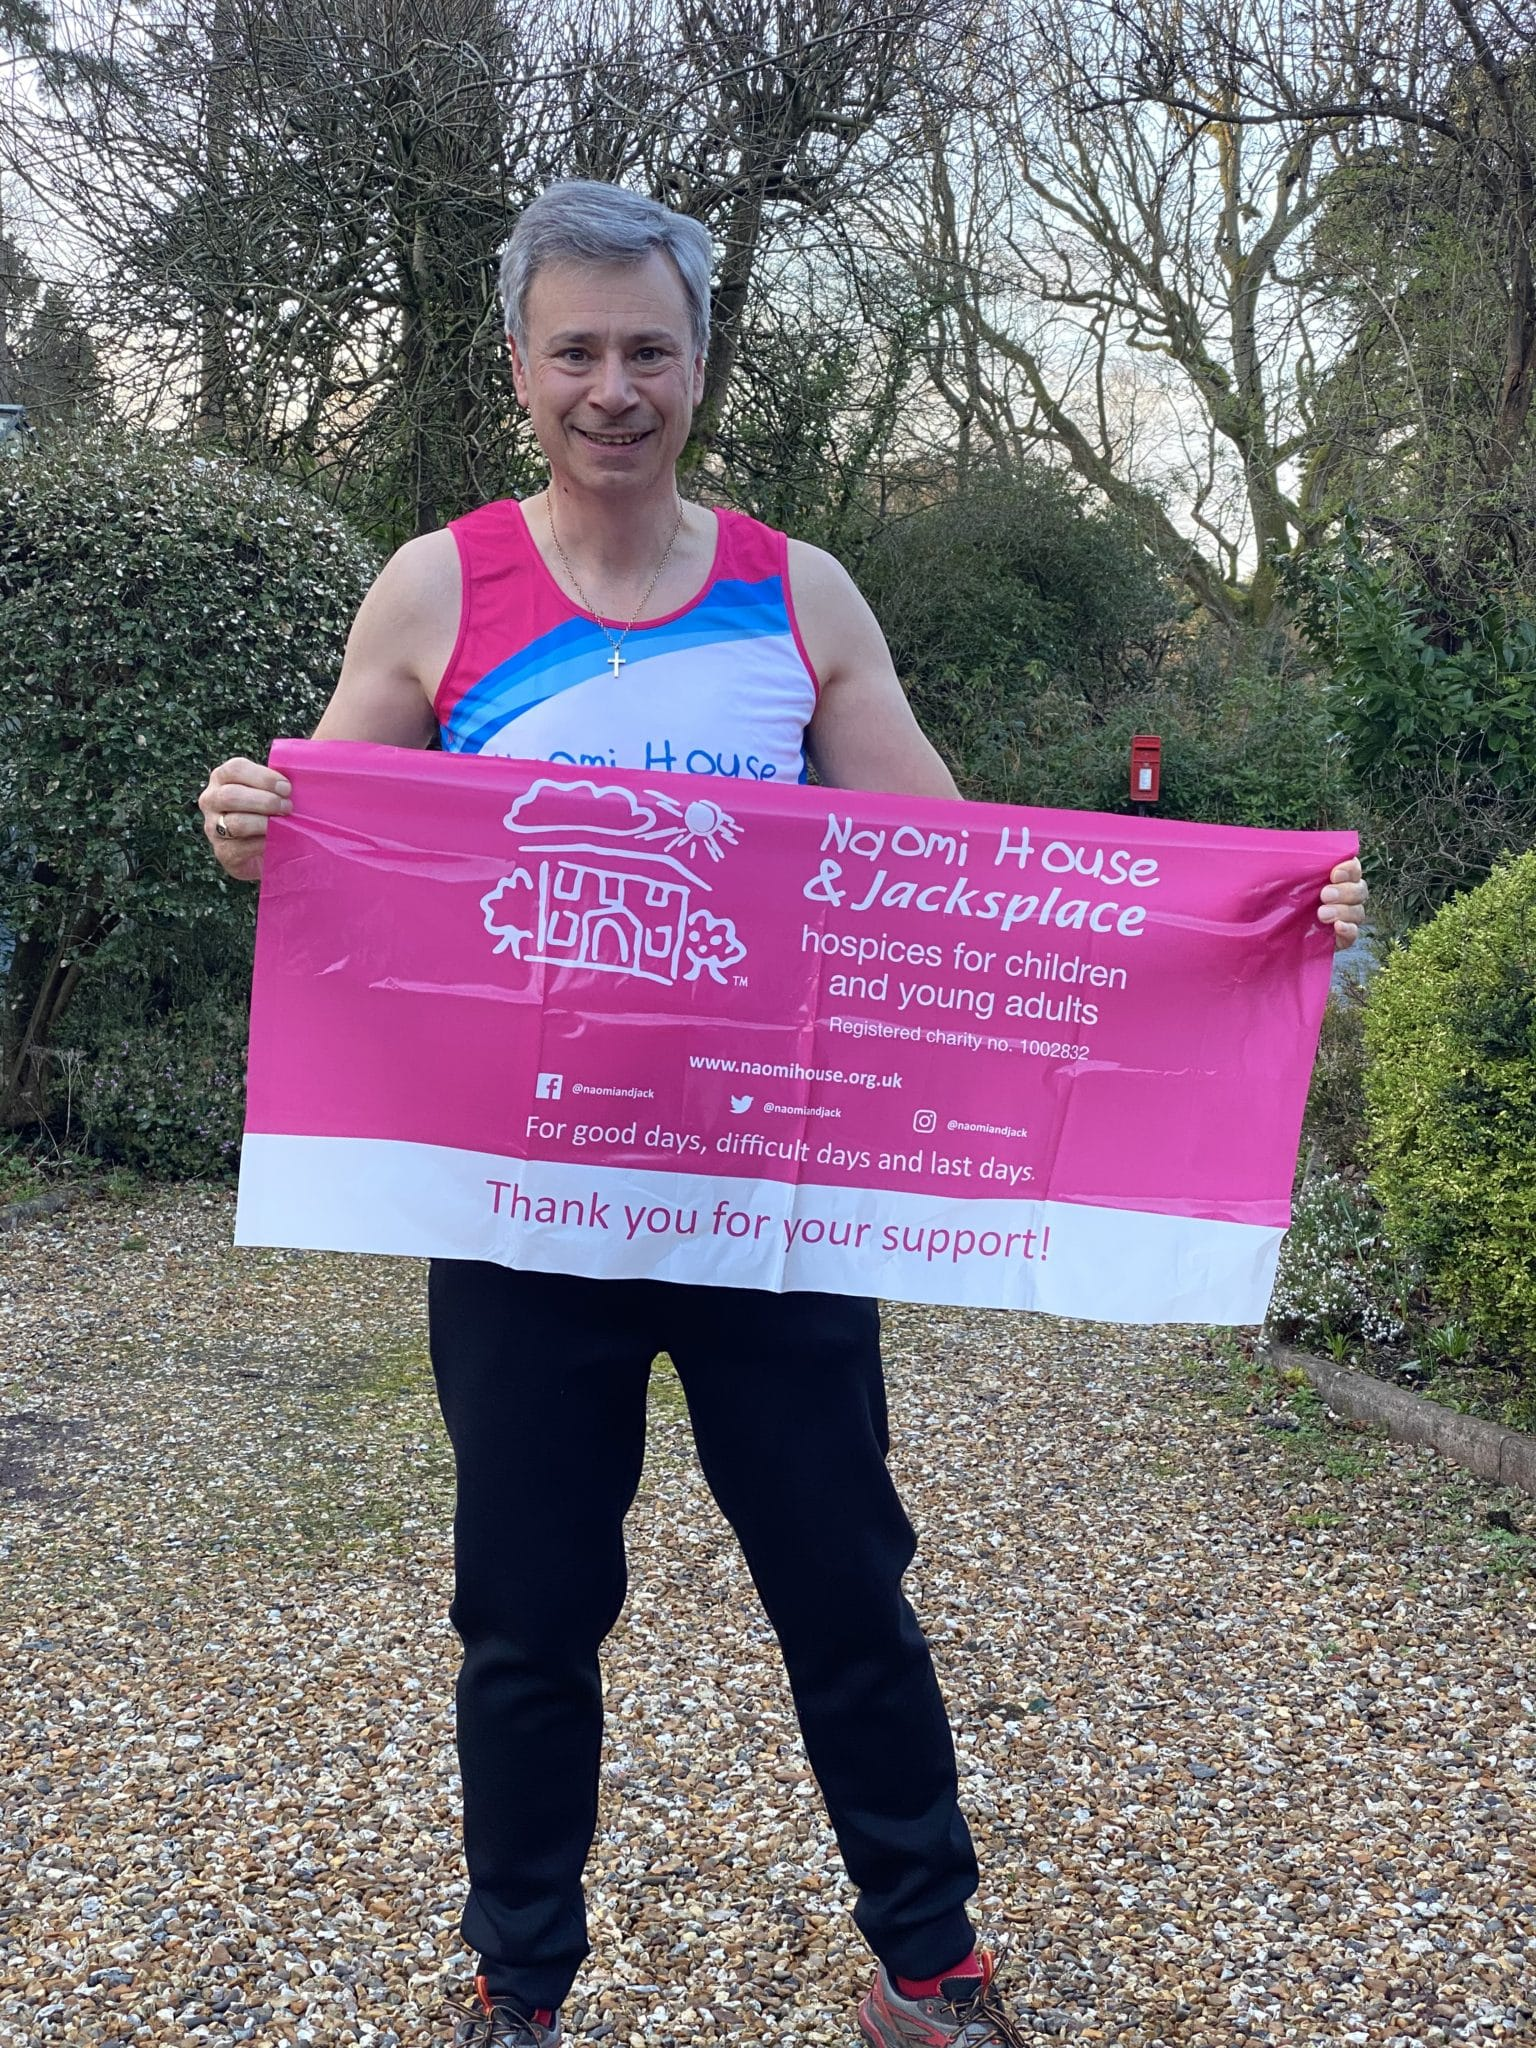 Naomi House Spring into Action | 31 miles in 31 days | Fundraising sponsored event | Rick Burt | Rick Burt Century IT Services | Century IT Services | IT Services Southampton | IT Services Hampshire | IT Services Dorset | IT Services Wiltshire | IT Services West Sussex